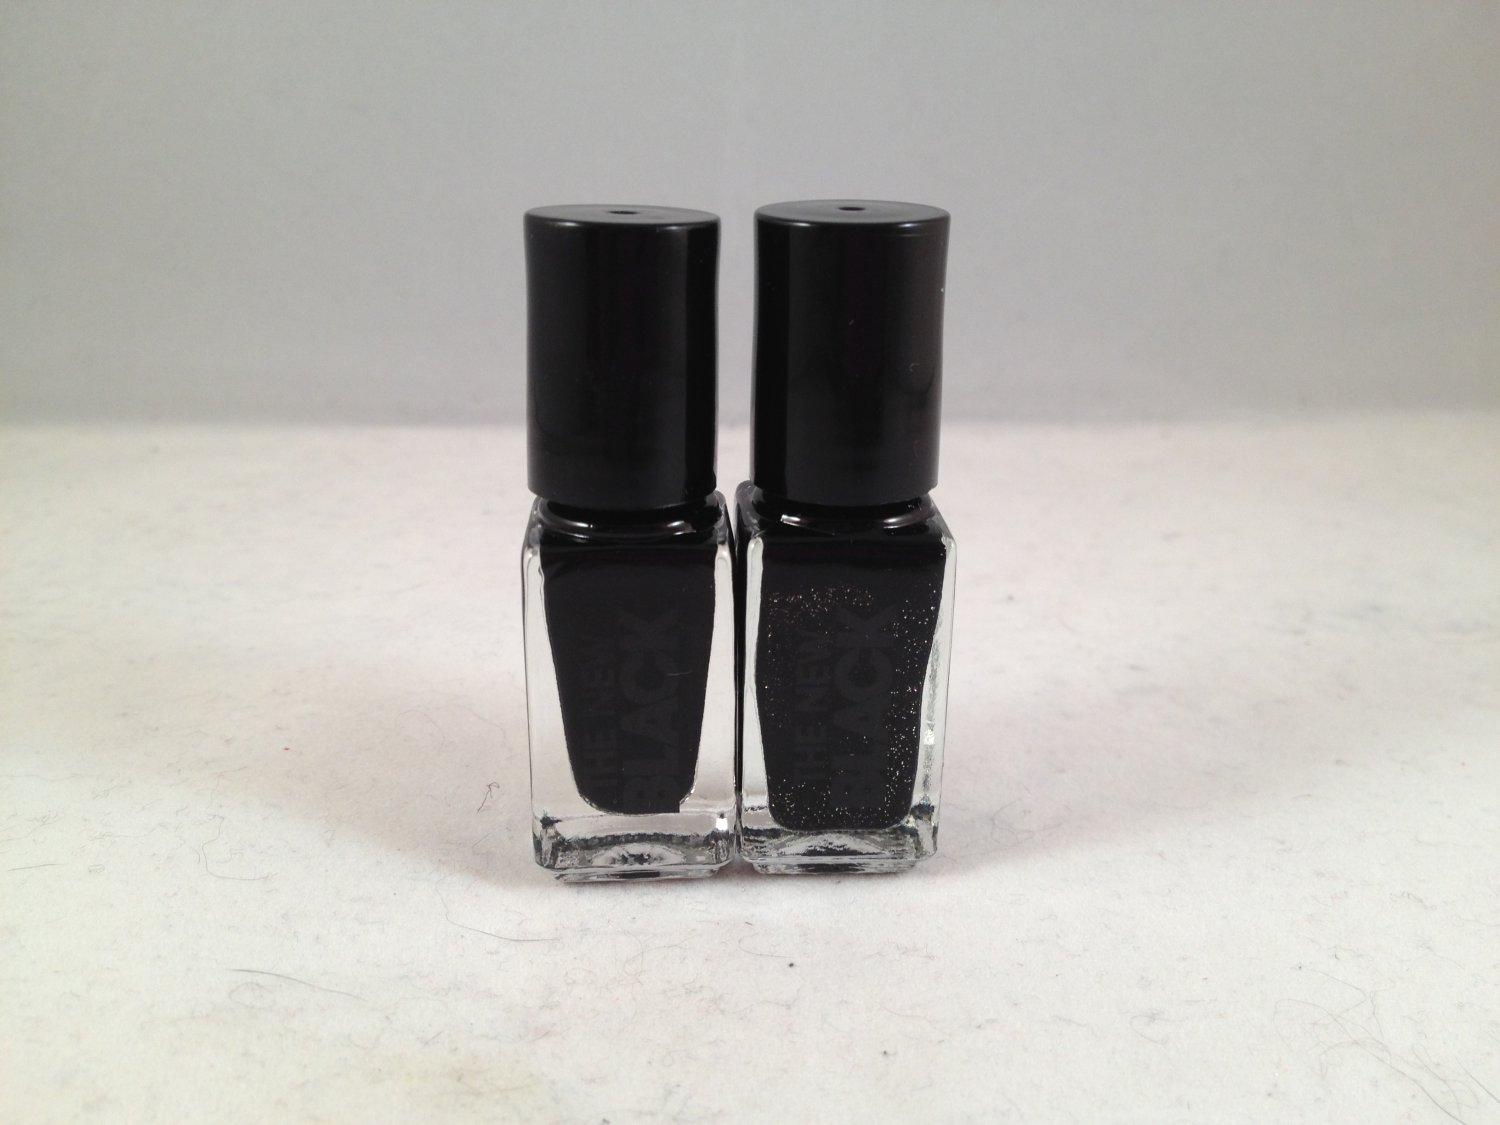 The New Black Glimmer Twins 2-Piece Nail Lacquer Set Black Ice polish color